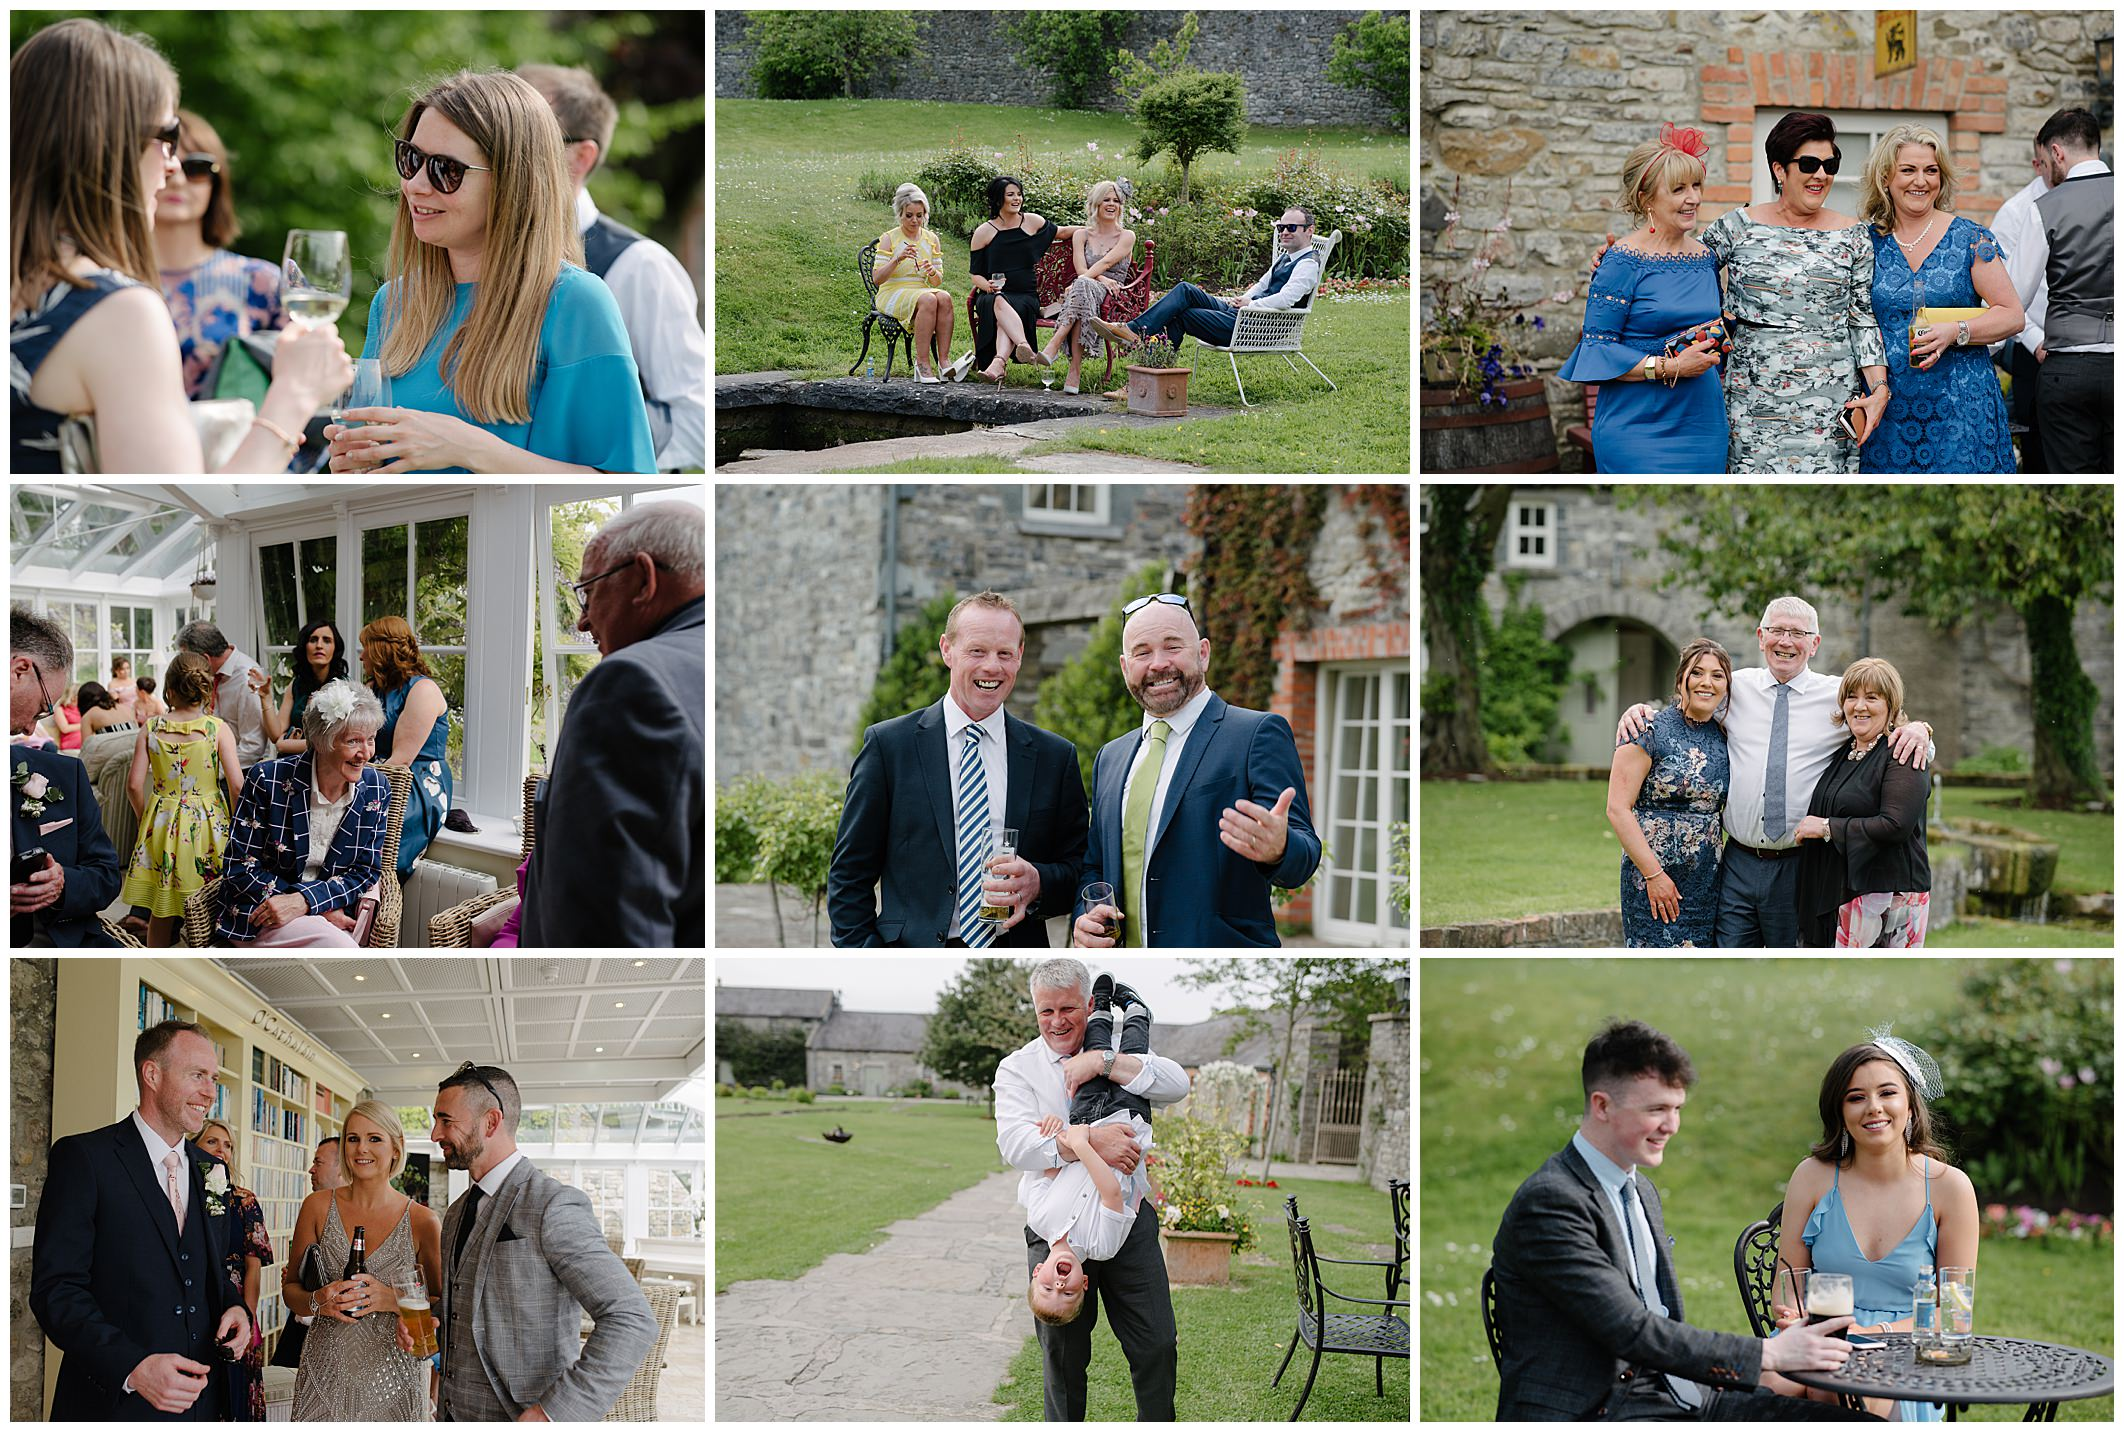 ballymagarvey-village-wedding-jude-browne-photography-132.jpg